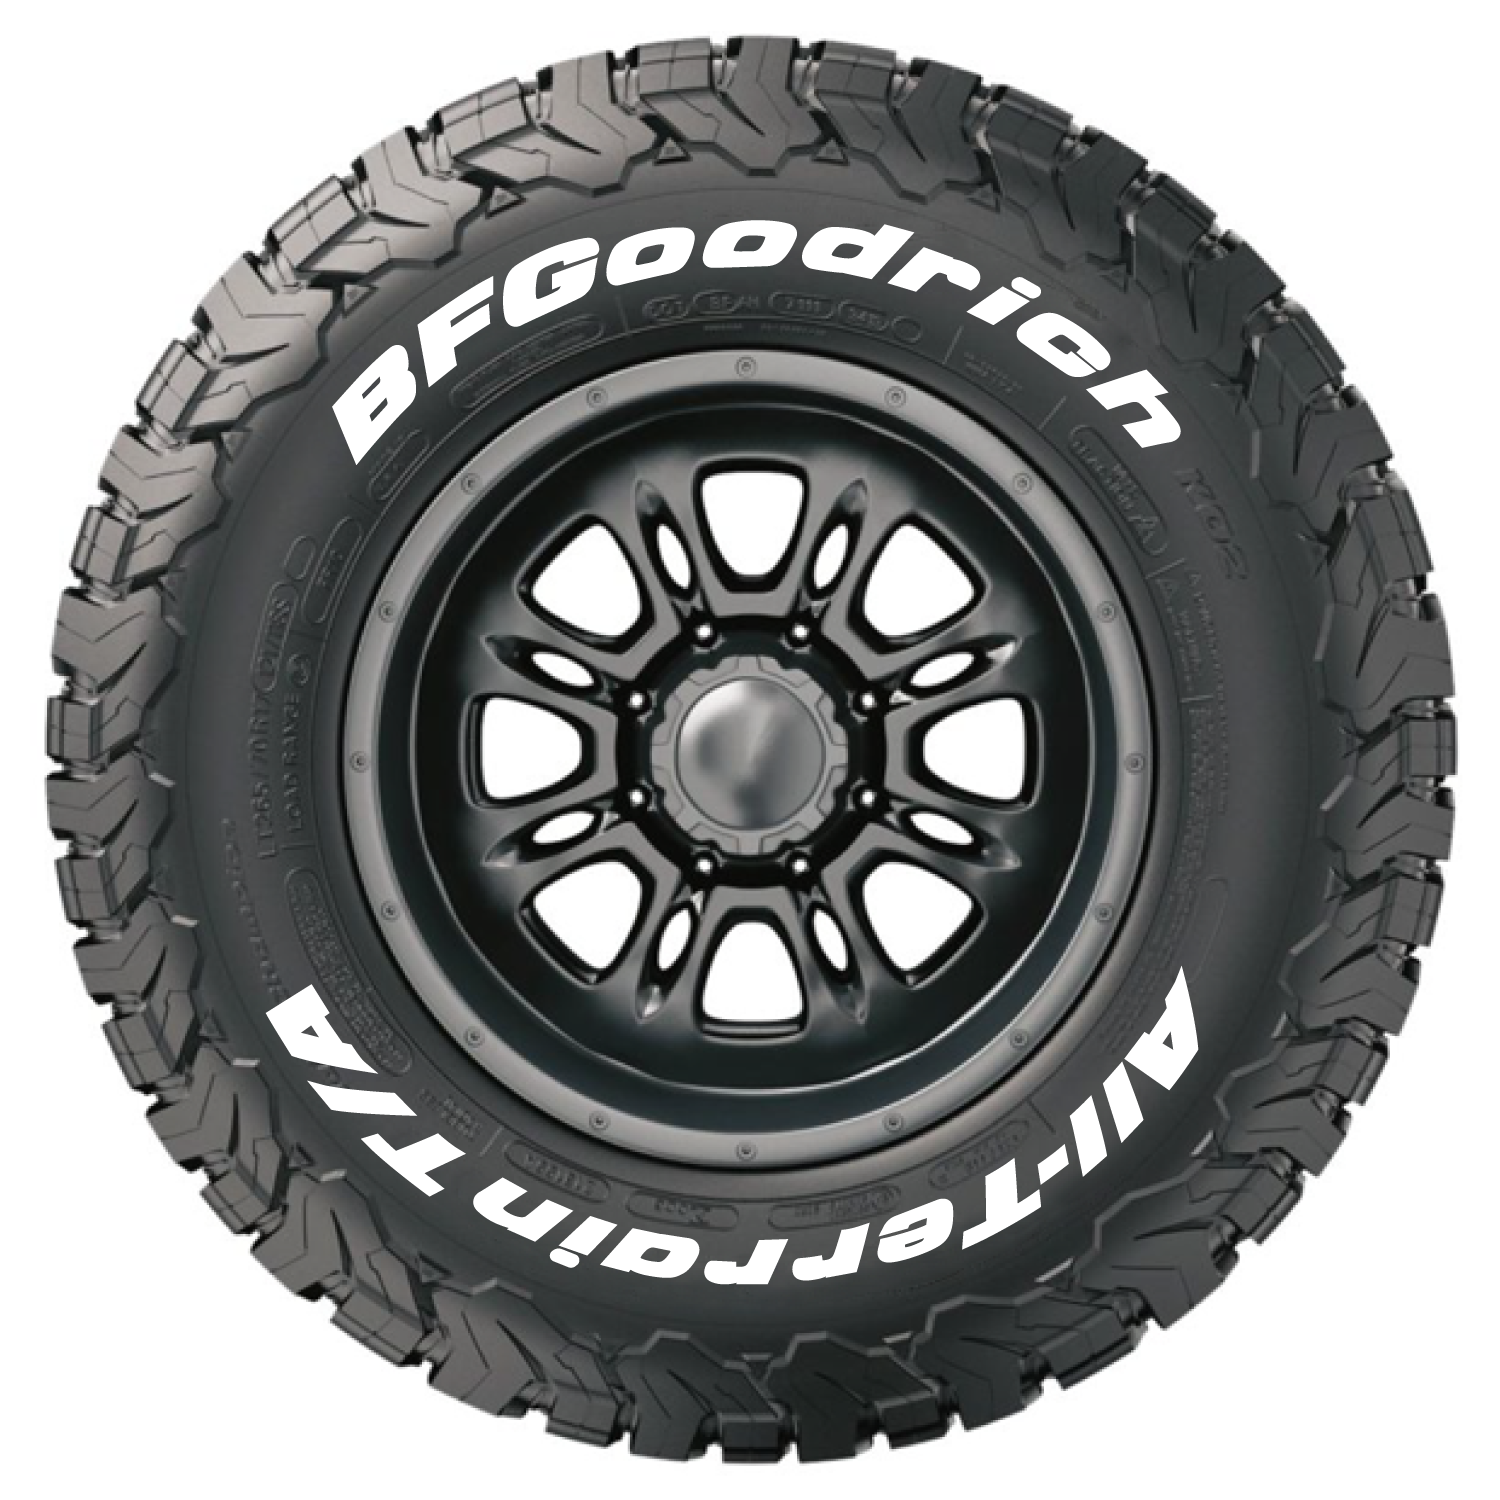 official bfgoodrich tire letters tire stickers com. Black Bedroom Furniture Sets. Home Design Ideas